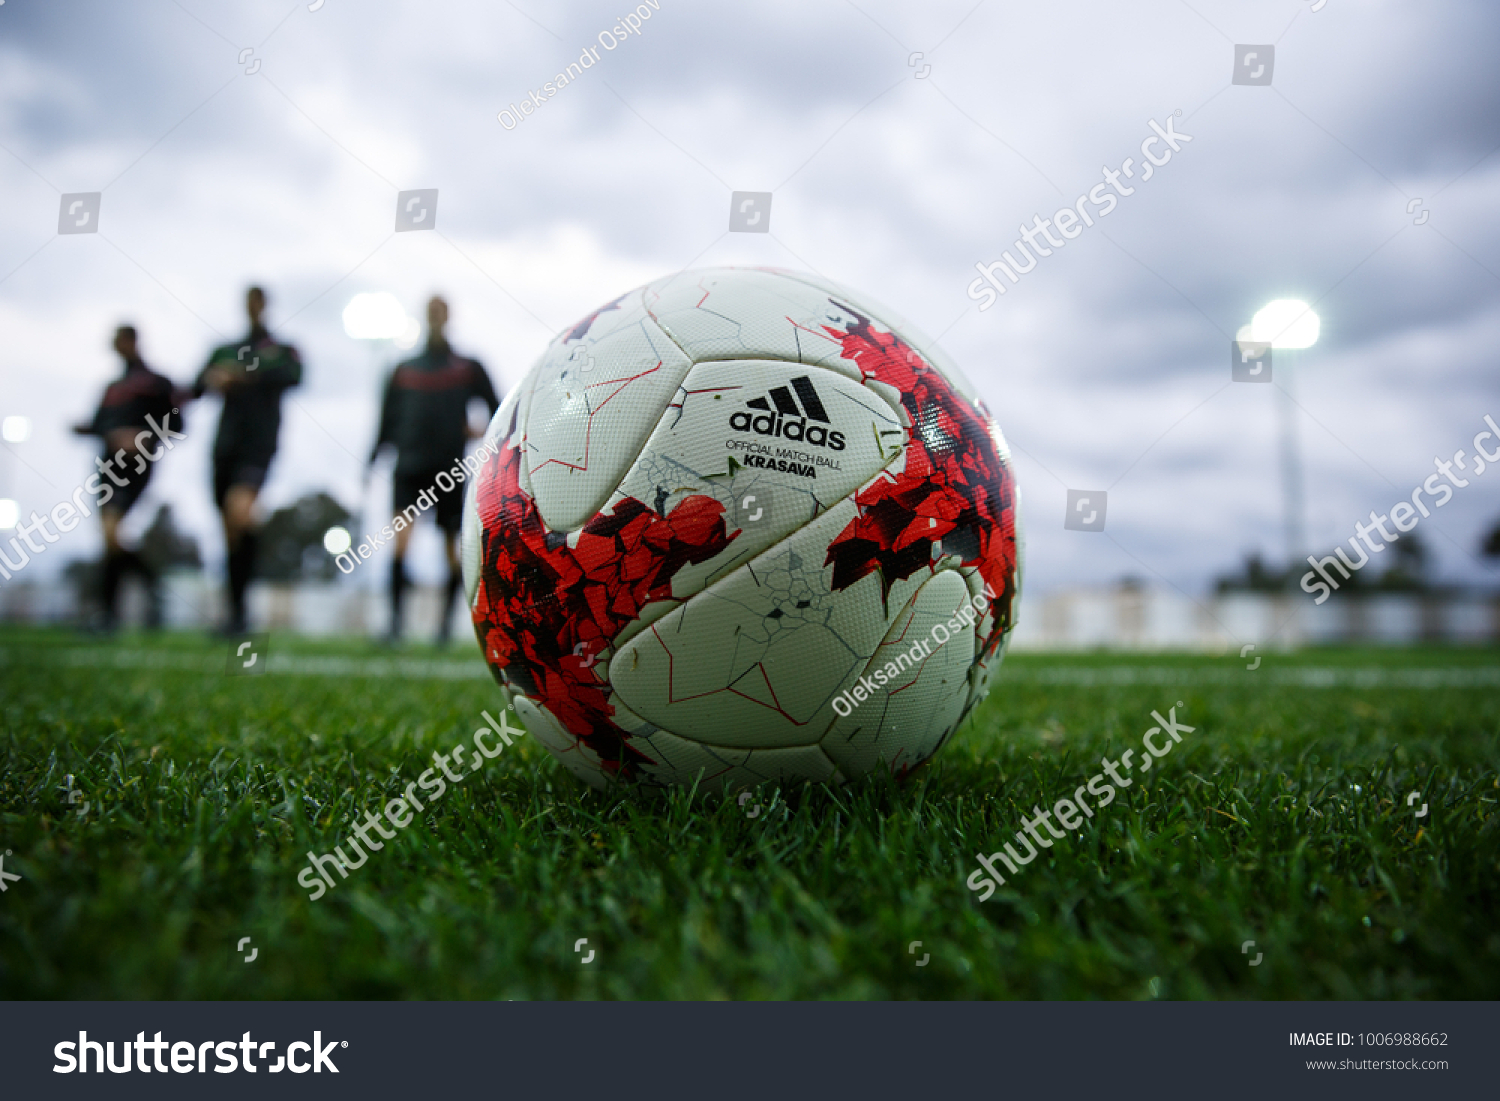 Wonderful Europe World Cup 2018 - stock-photo-paris-europe-january-official-match-ball-of-the-fifa-world-cup-adidas-krasava-on-1006988662  Photograph_272391 .jpg